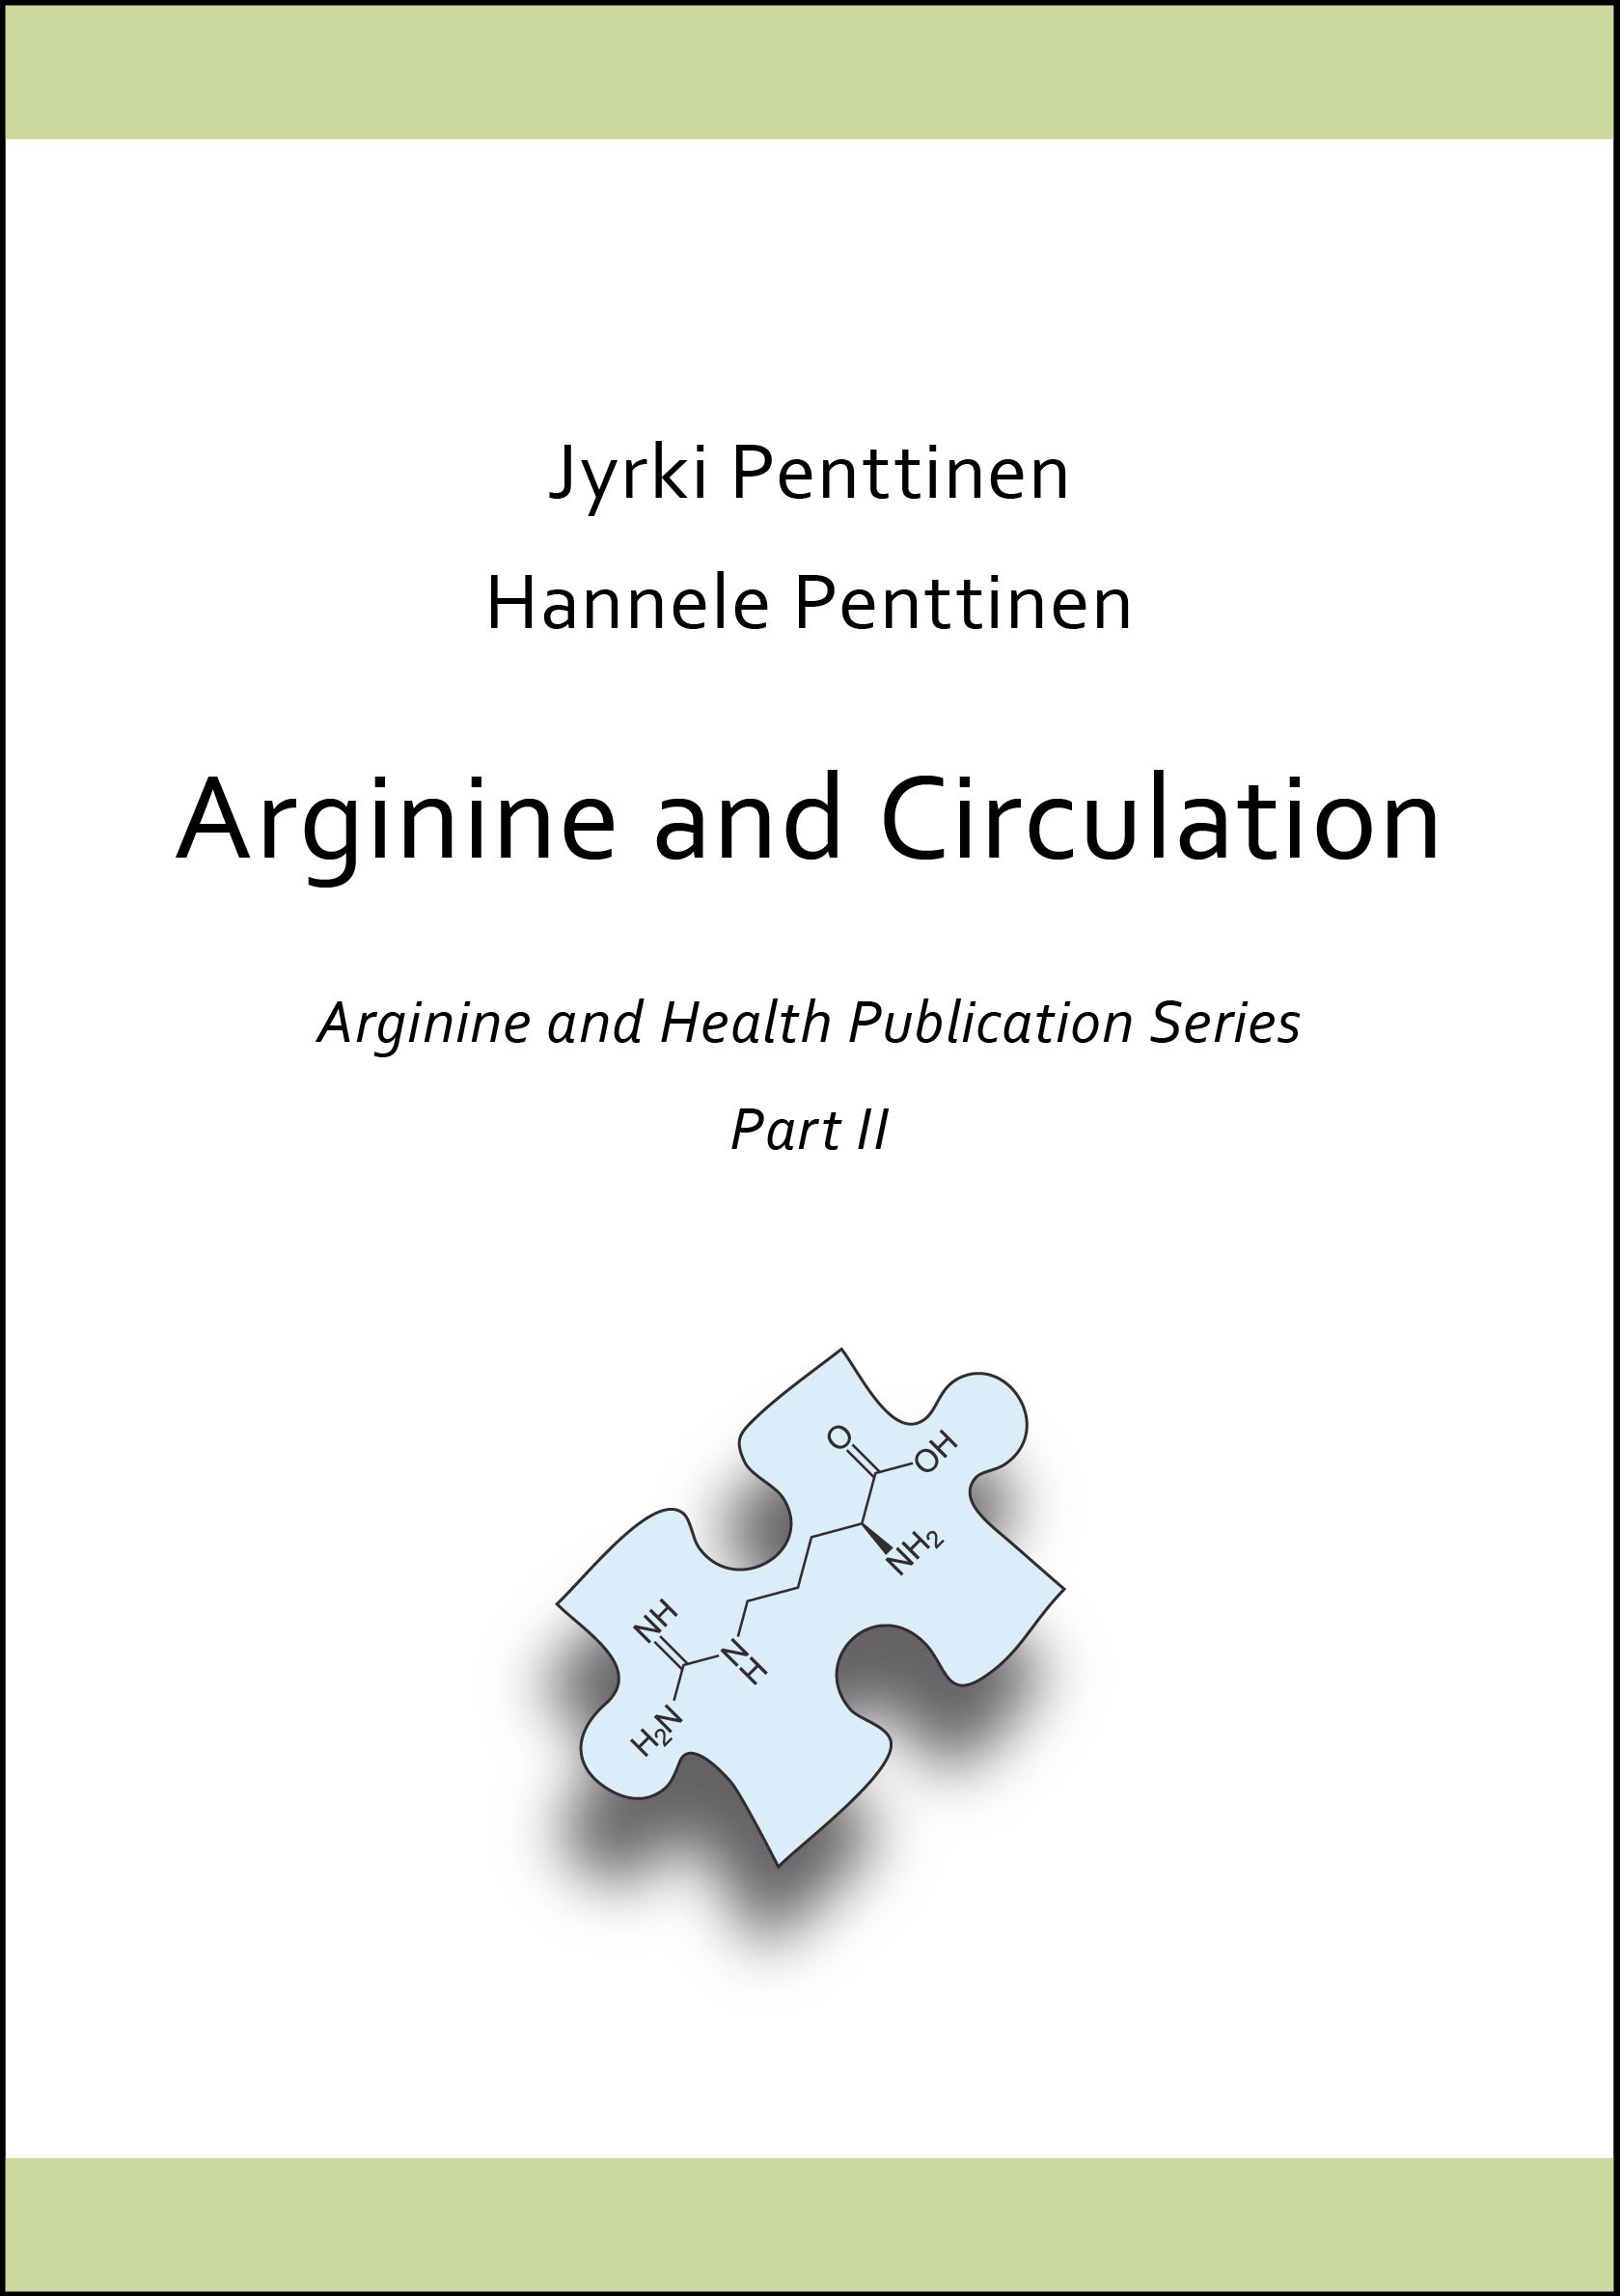 Arginine and Health Publication Series, Part 2: Arginine and Circulation